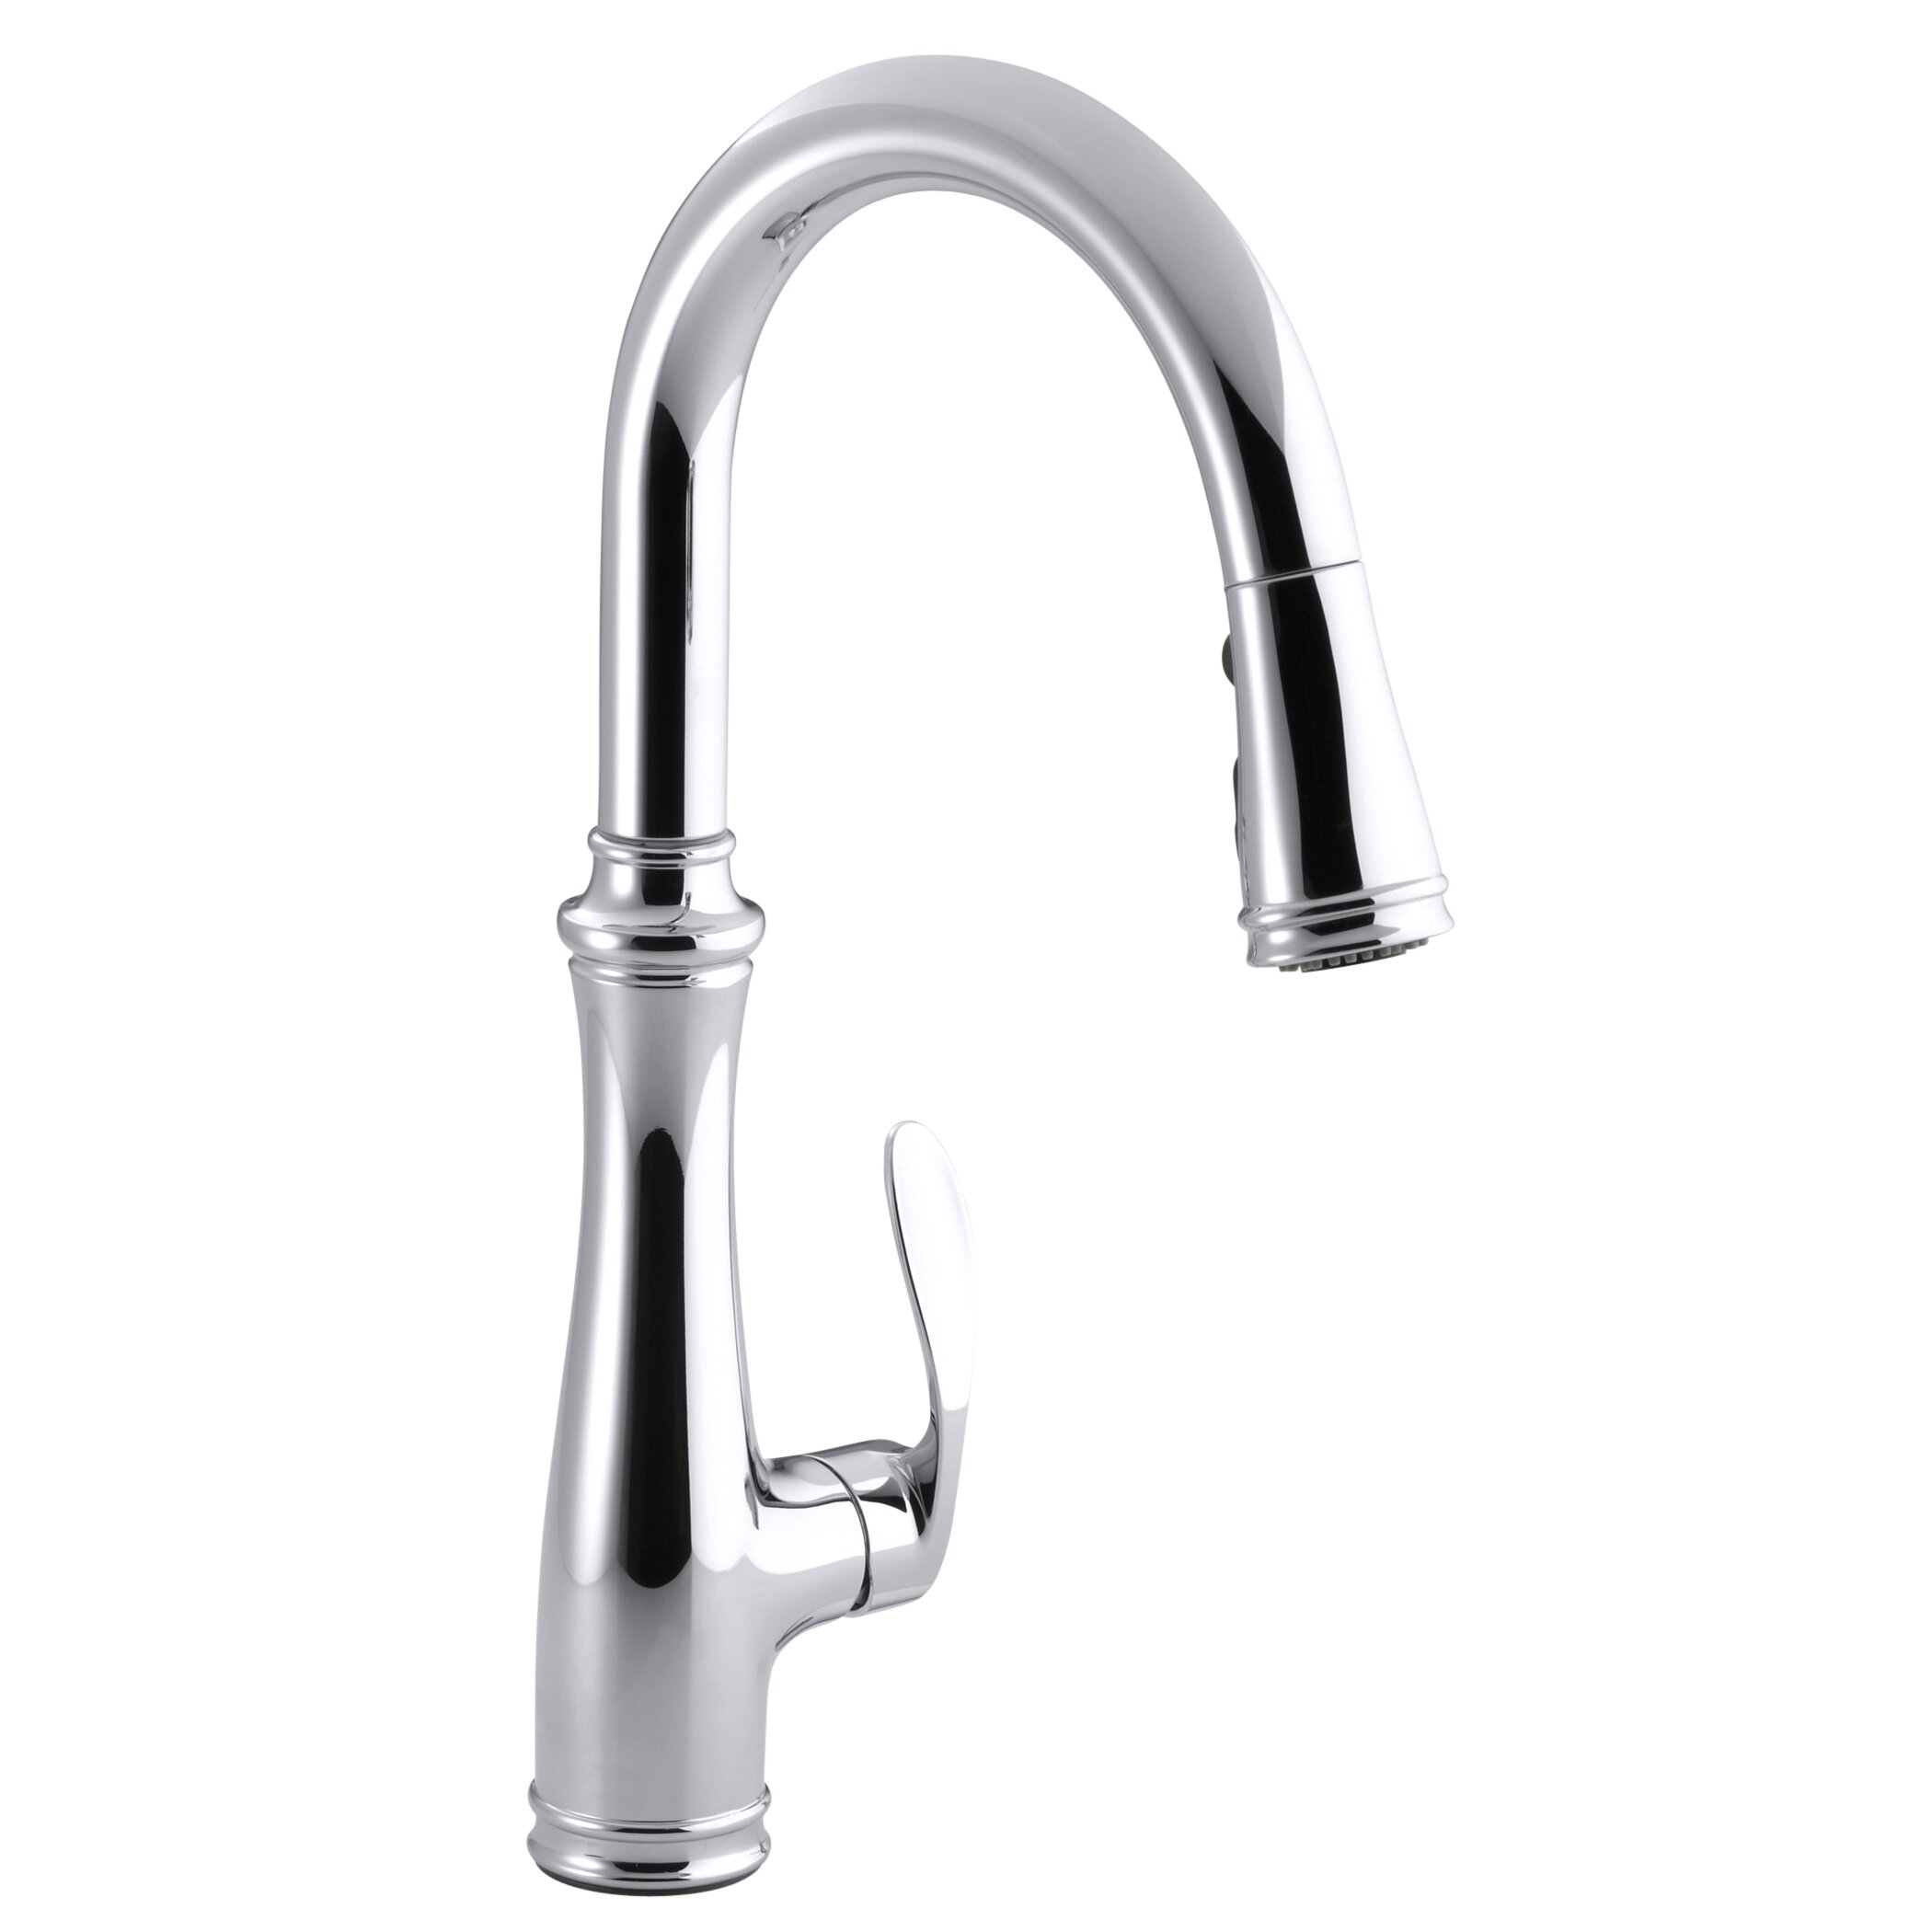 kohler bellera kitchen sink faucet with 16 3 4 quot pull down kitchen kohler faucets parts kohler kitchen faucet